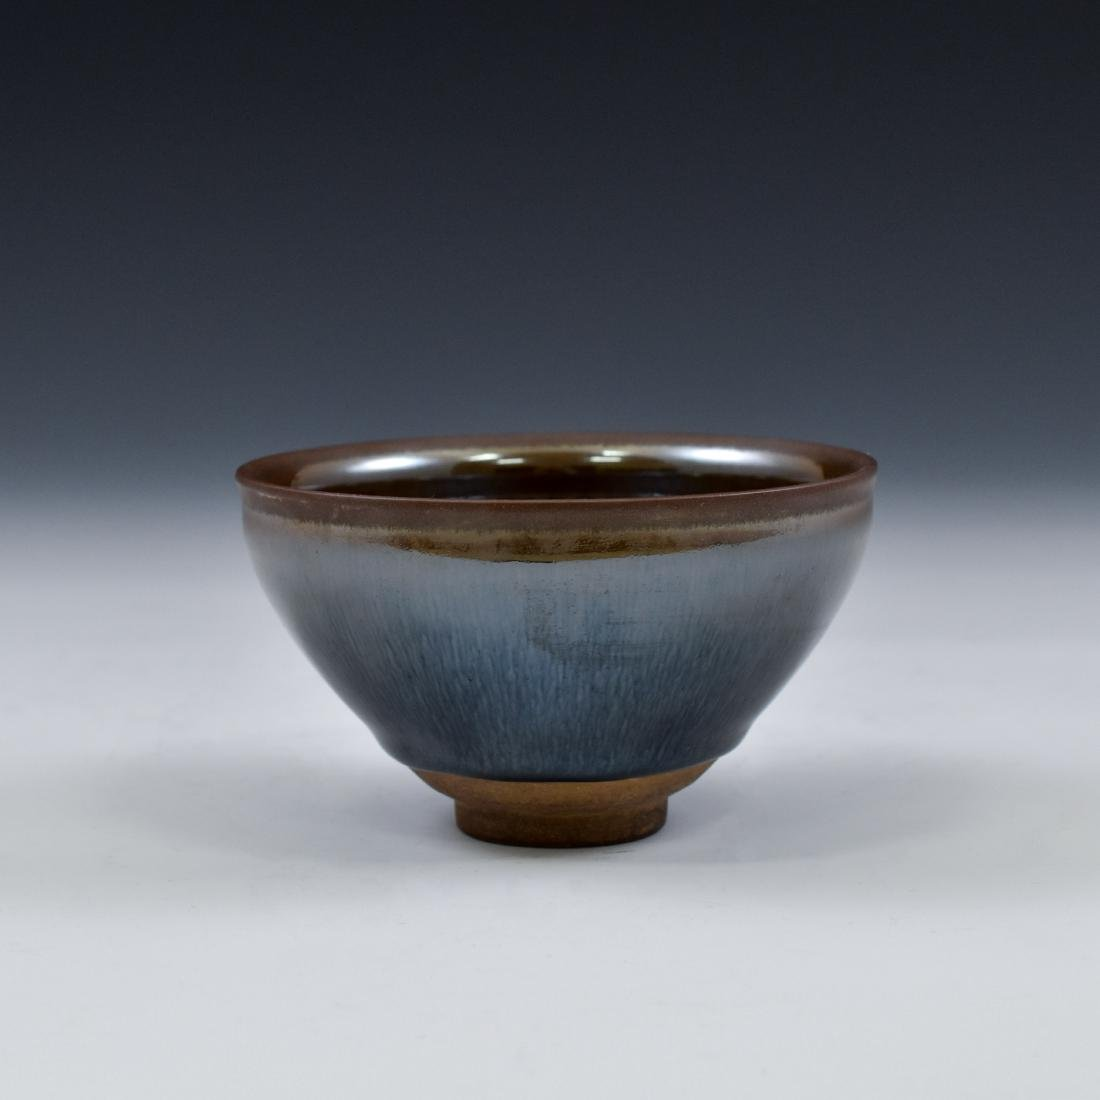 CHINESE JIAN WARE 'HARE FUR' TEA BOWL - 9